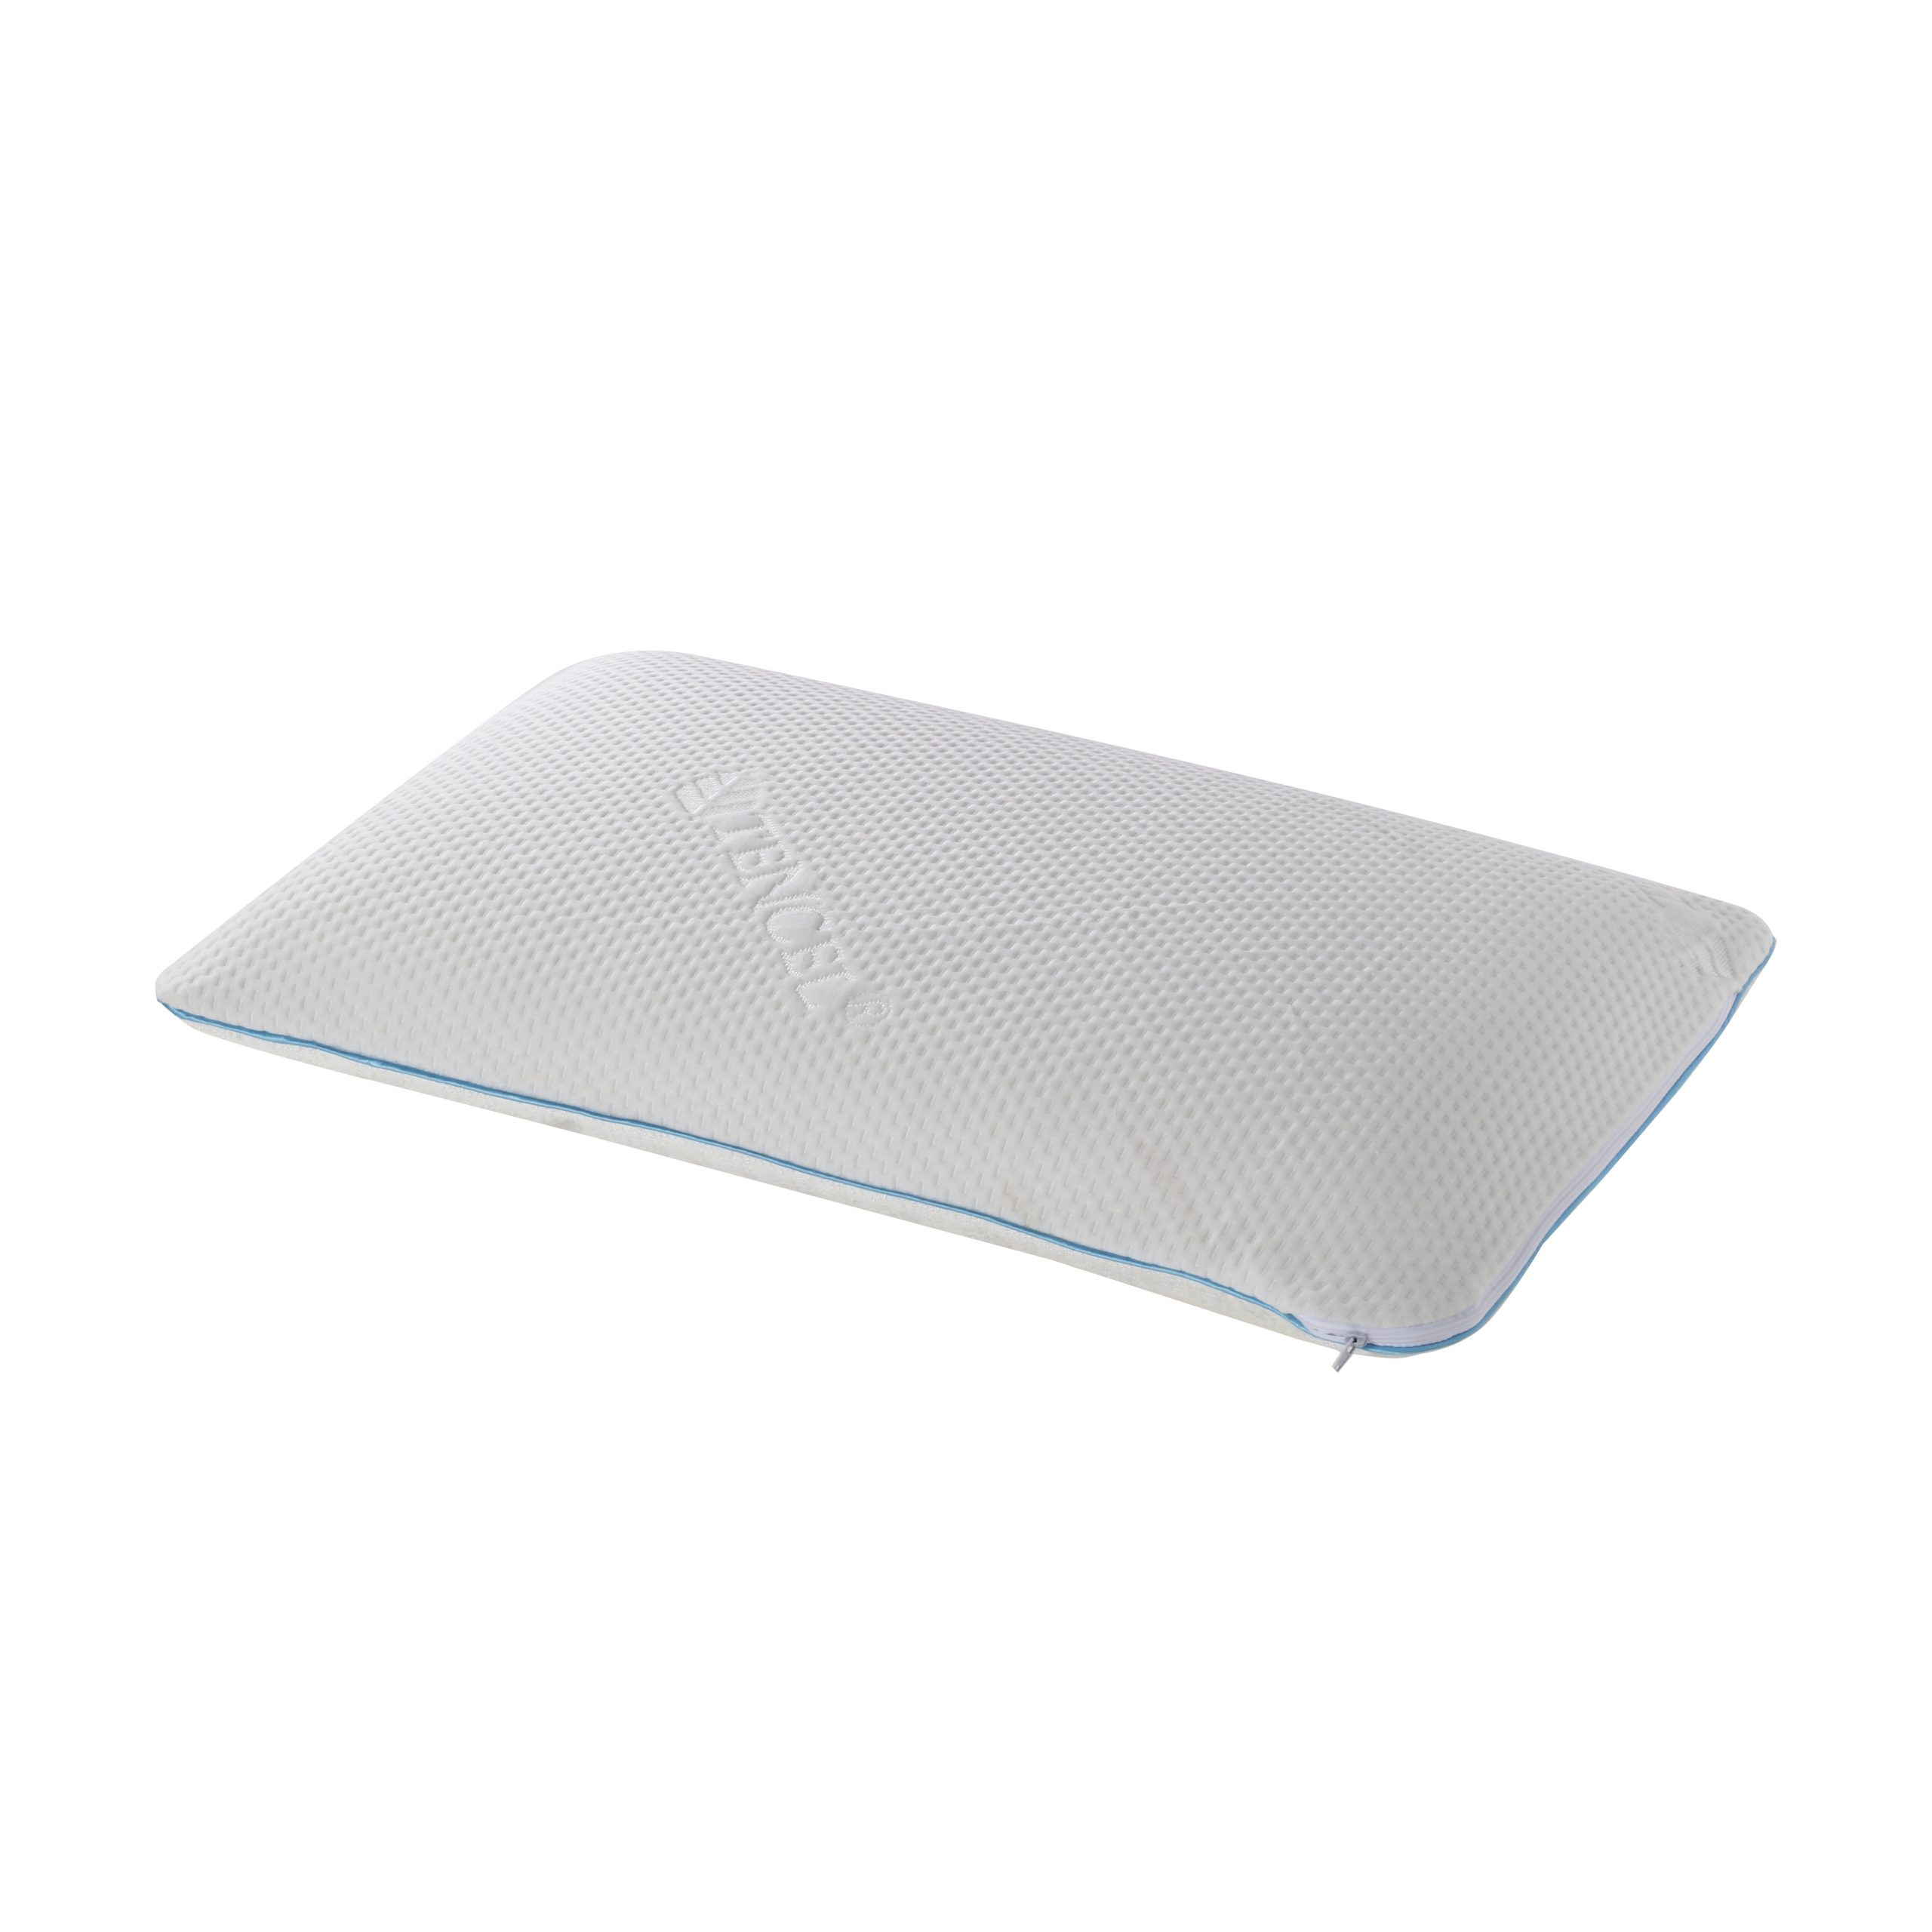 Belize Talalay Latex Pillow with Dual Sleep Surface Pillow Cover - Cooltouch & Tencel - Standard Size